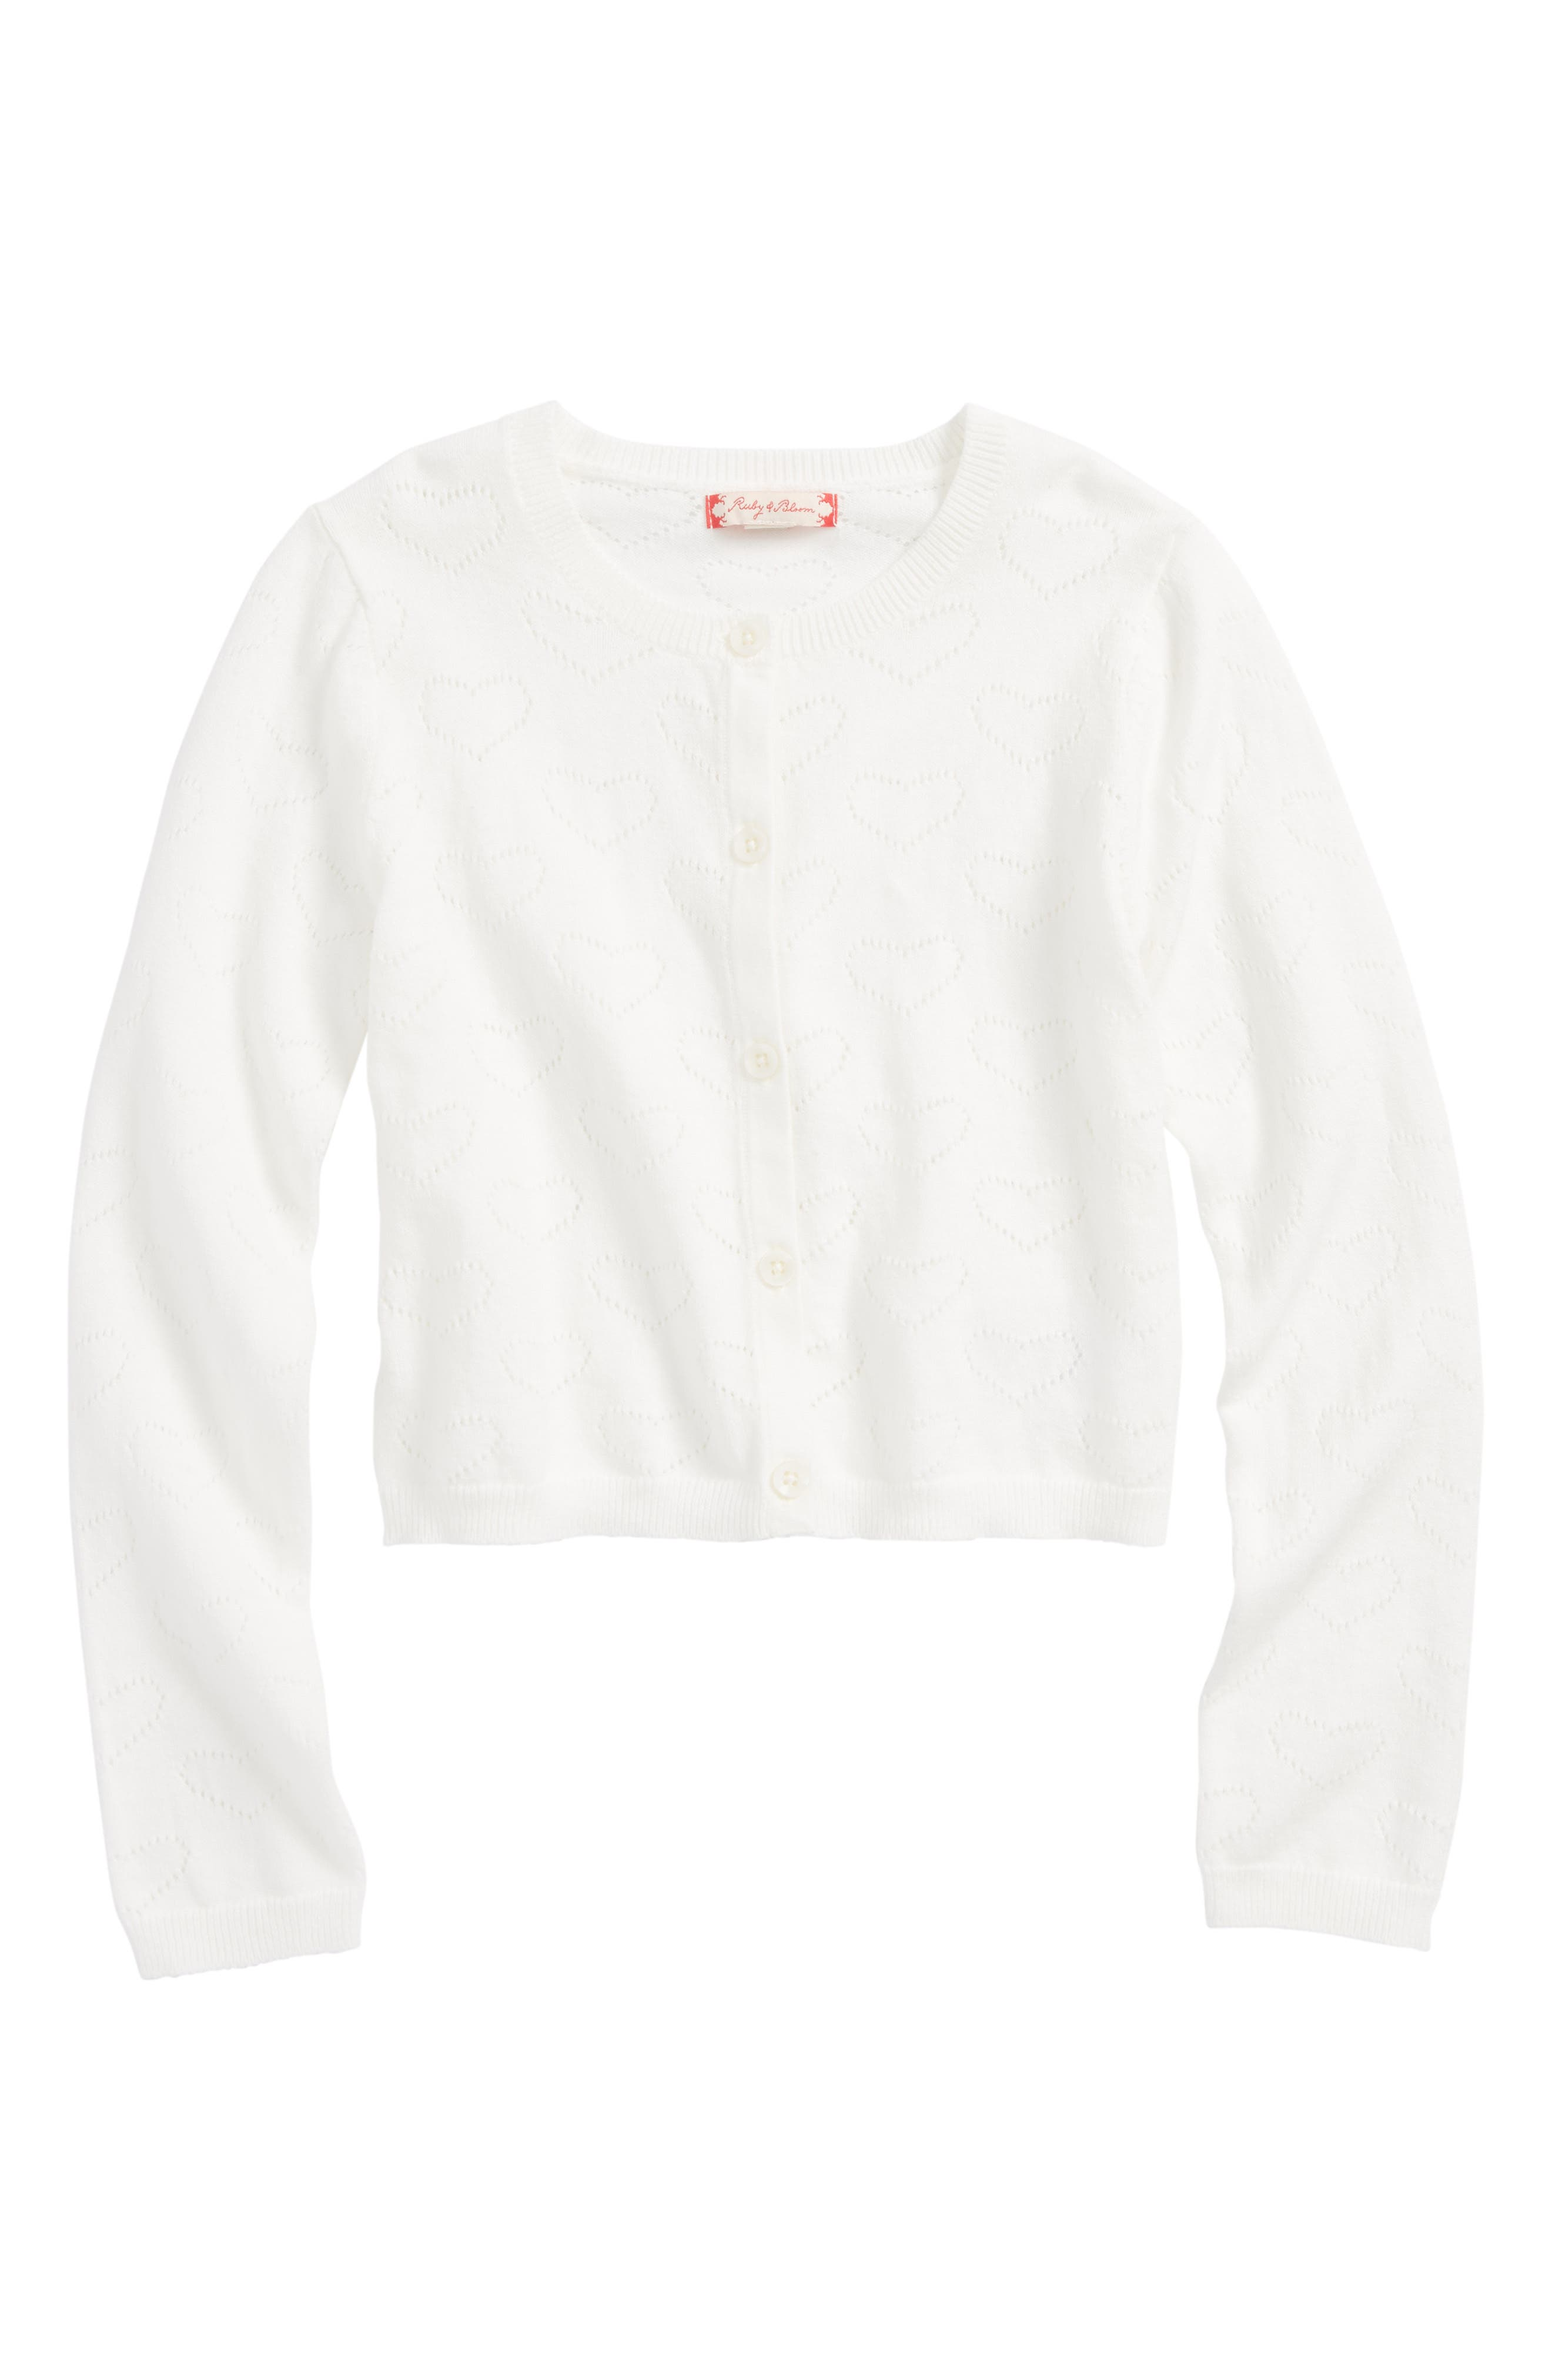 Toddler Girls Ruby  Bloom Heart Pointelle Knit Cardigan Size 3T  White